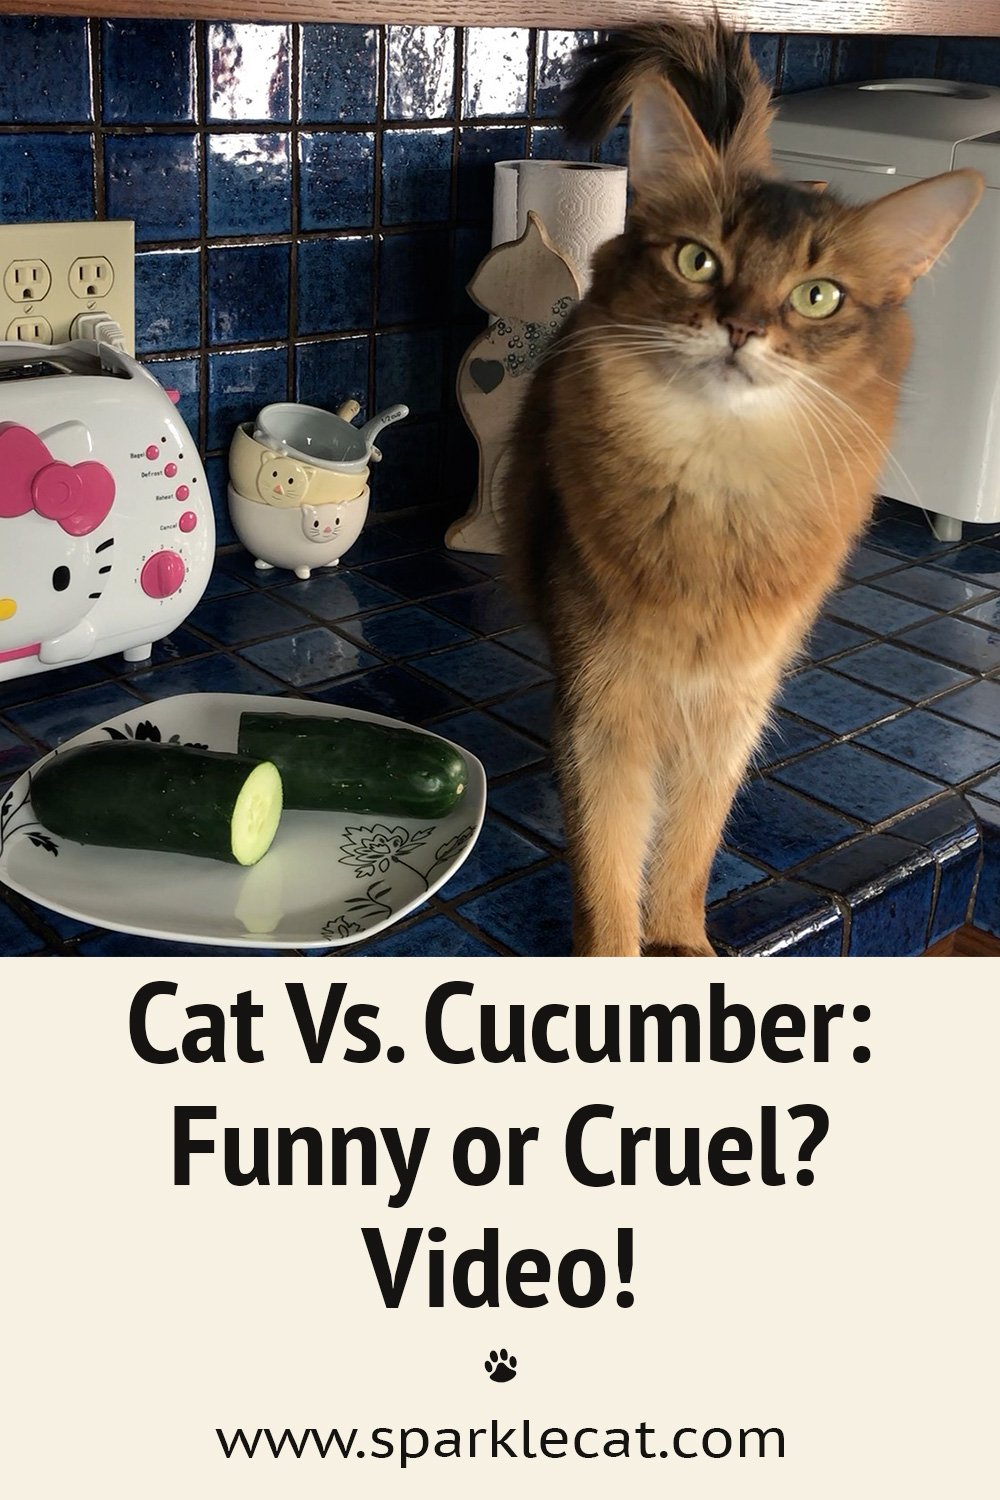 Is Cat Vs. Cucumbers a Cruel Meme?